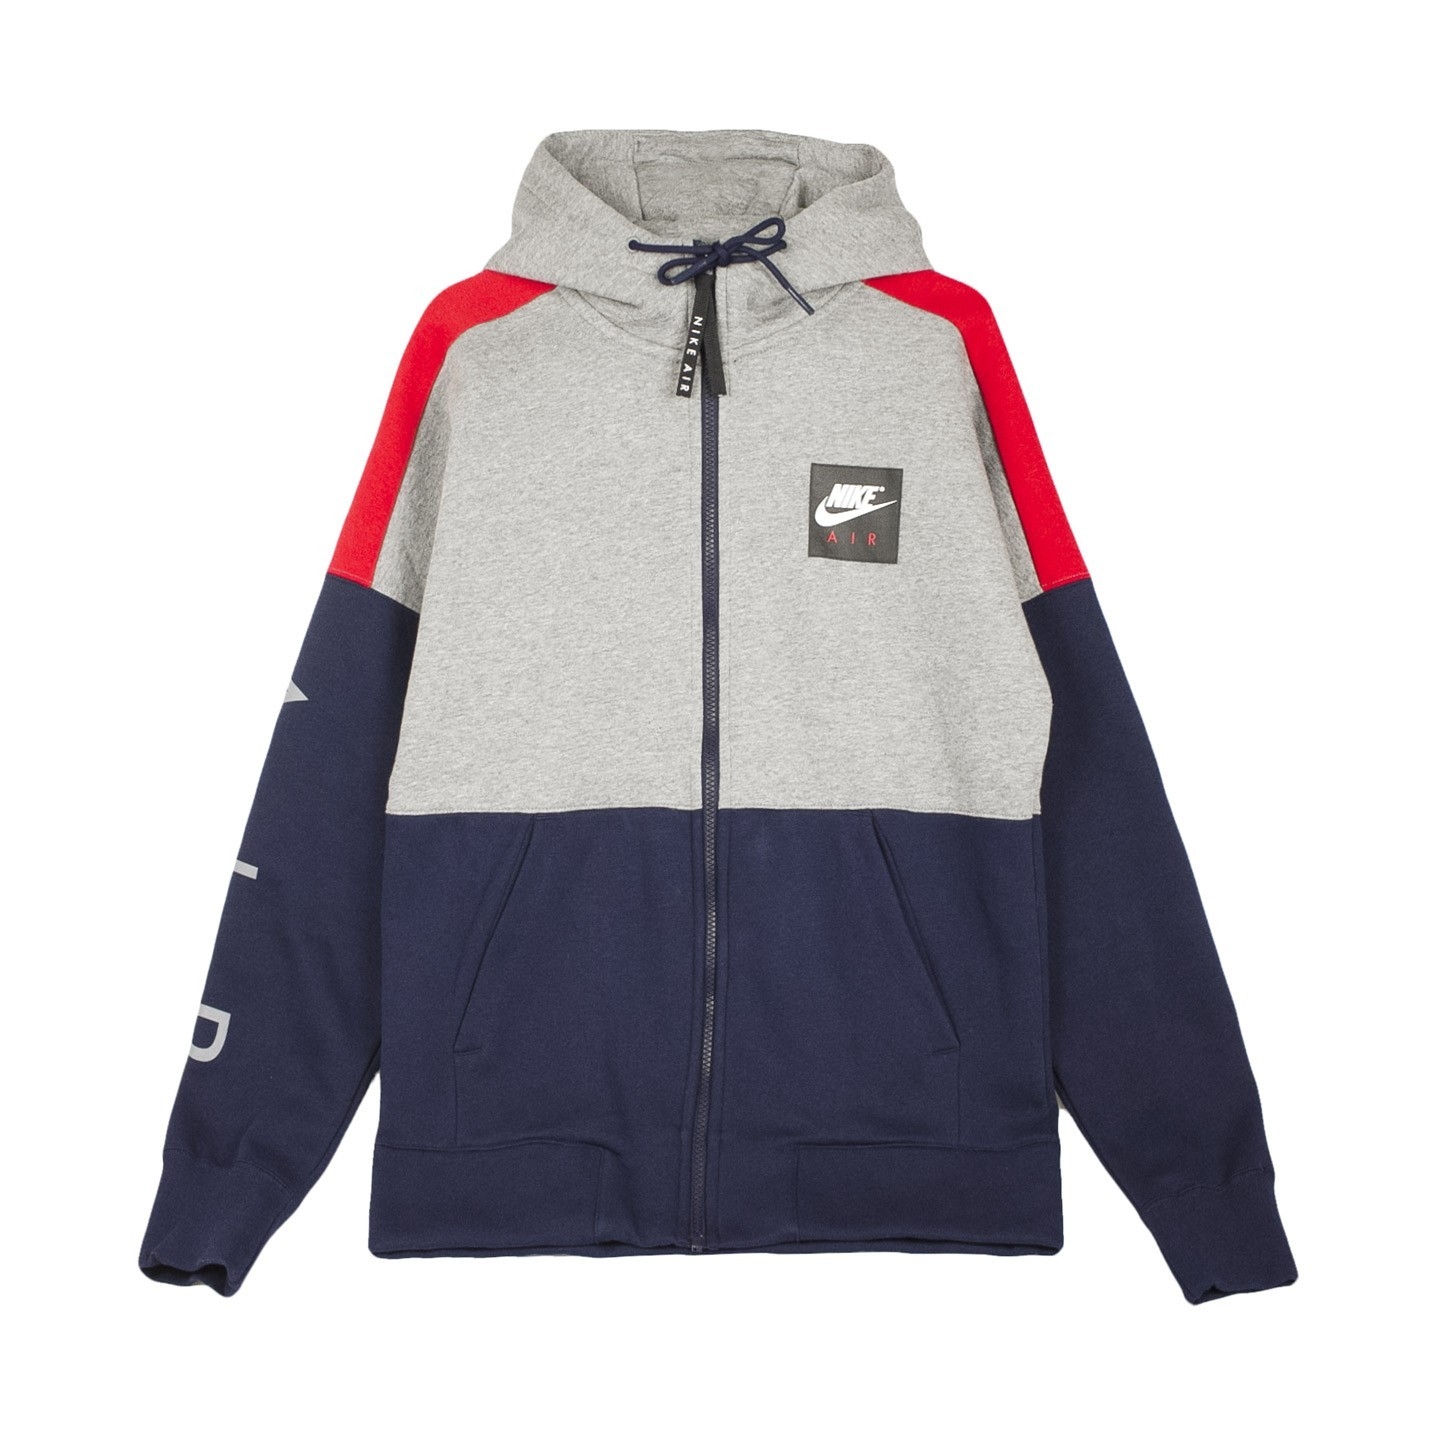 Nike Hoodie Carbon Heather Nike Hoodie Carbon Heather